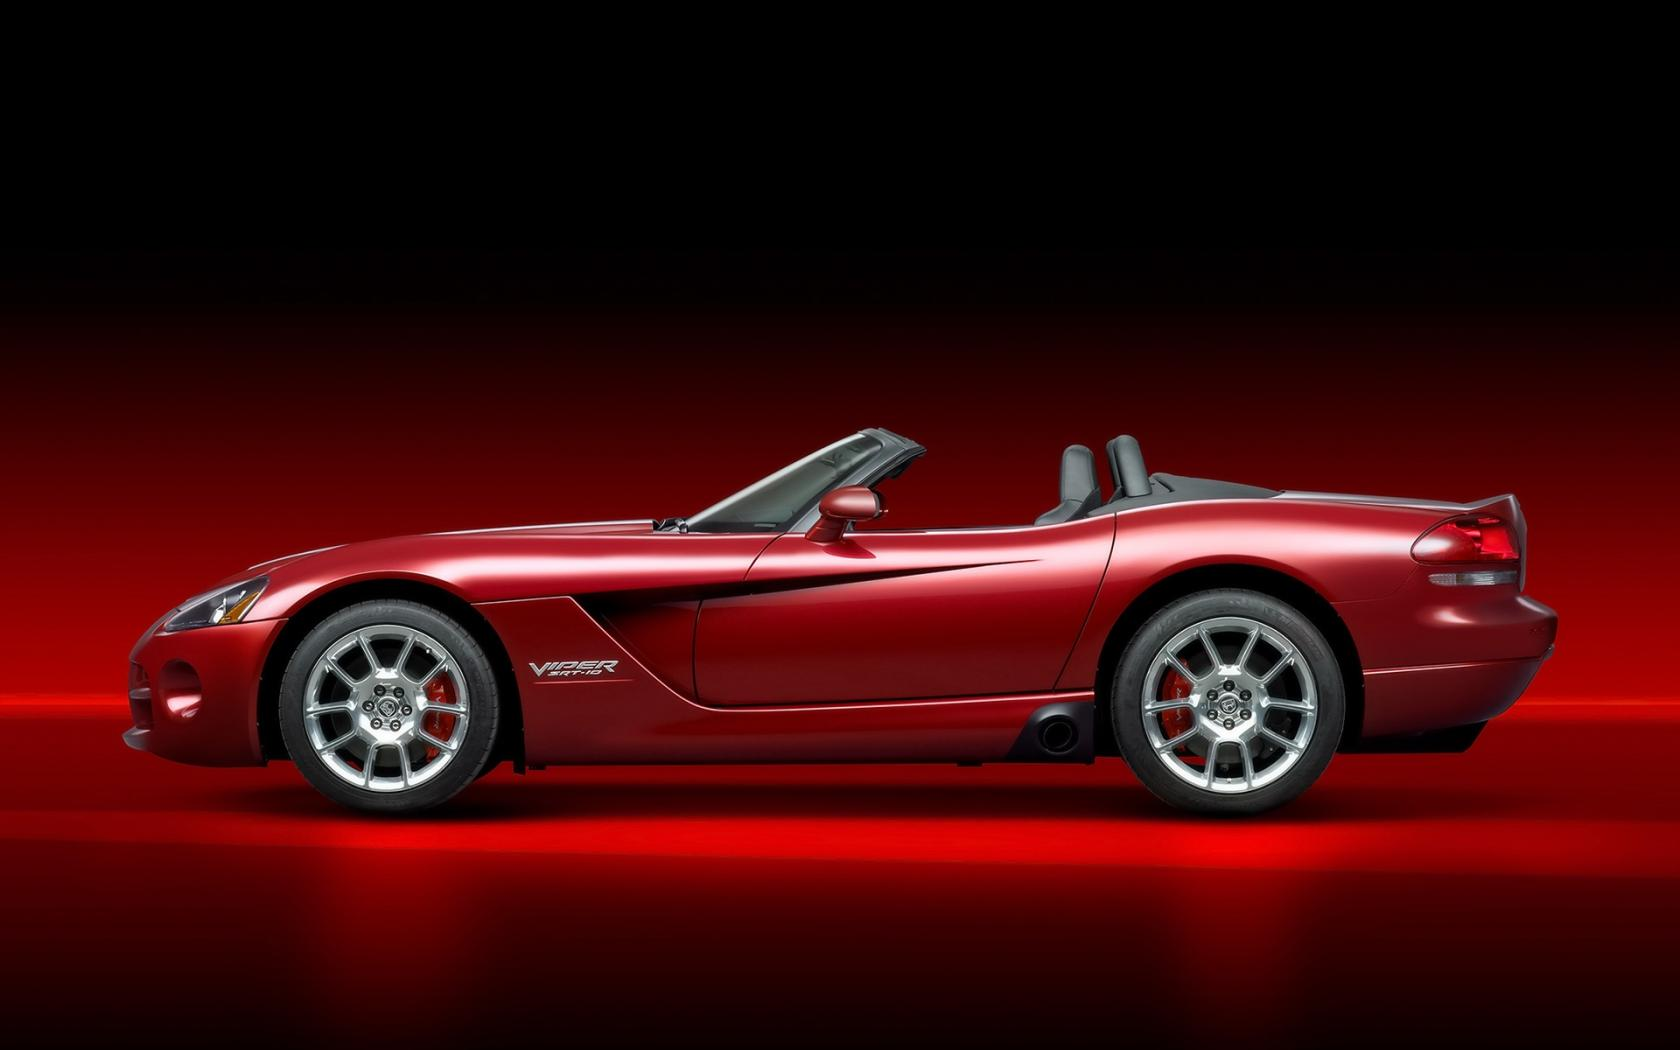 2008 Dodge Viper Srt10 Roadster Side 1680x1050